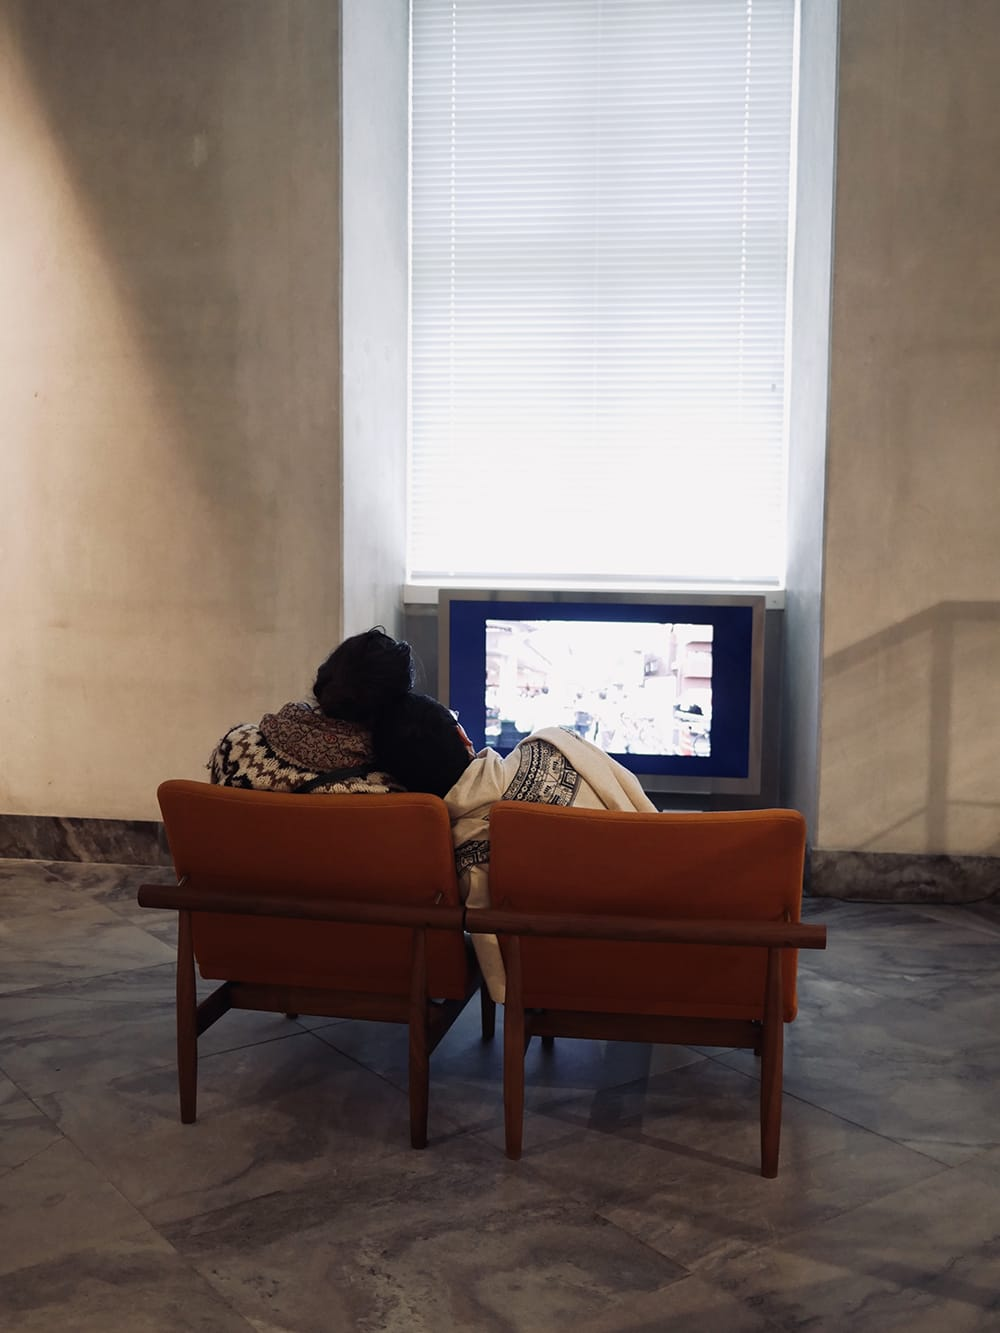 Two visitors of a museum cuddling up in front of television. Copenhagen